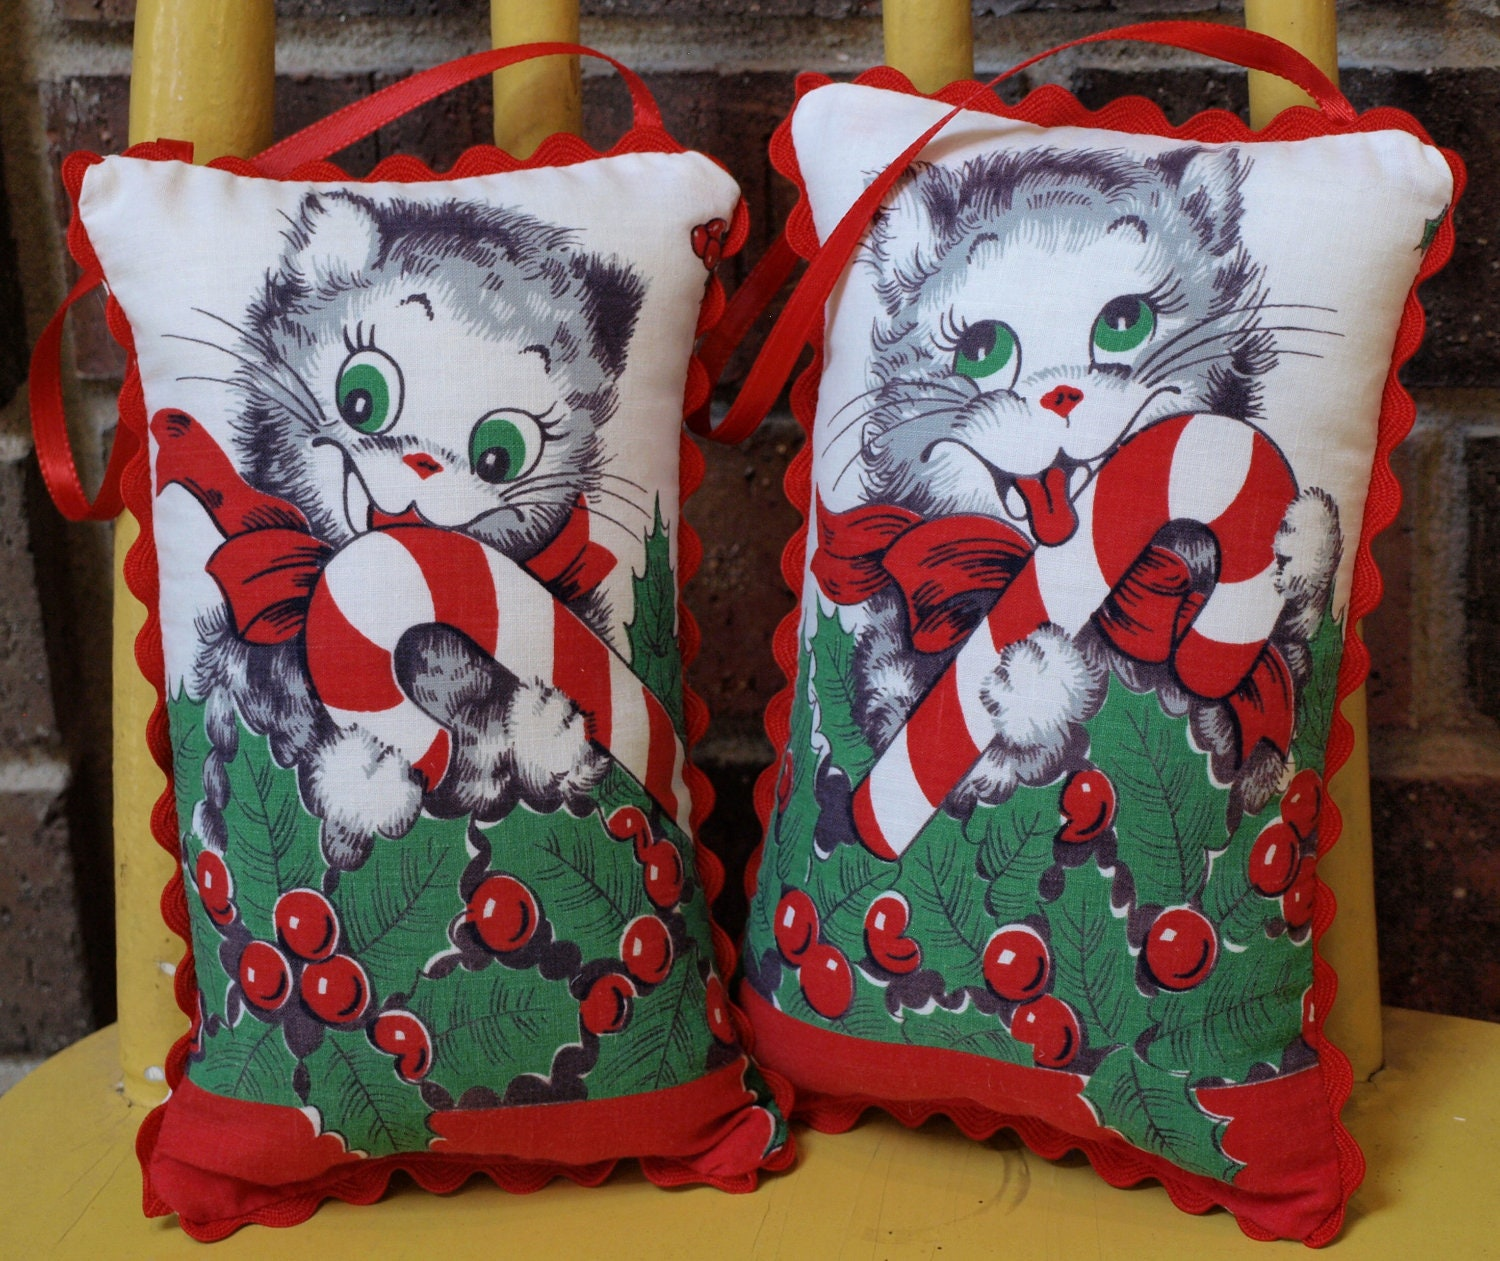 VINTAGE Fabric Christmas CATS Stuffed PILLOW Ornaments - Door Hangers - Set of 2